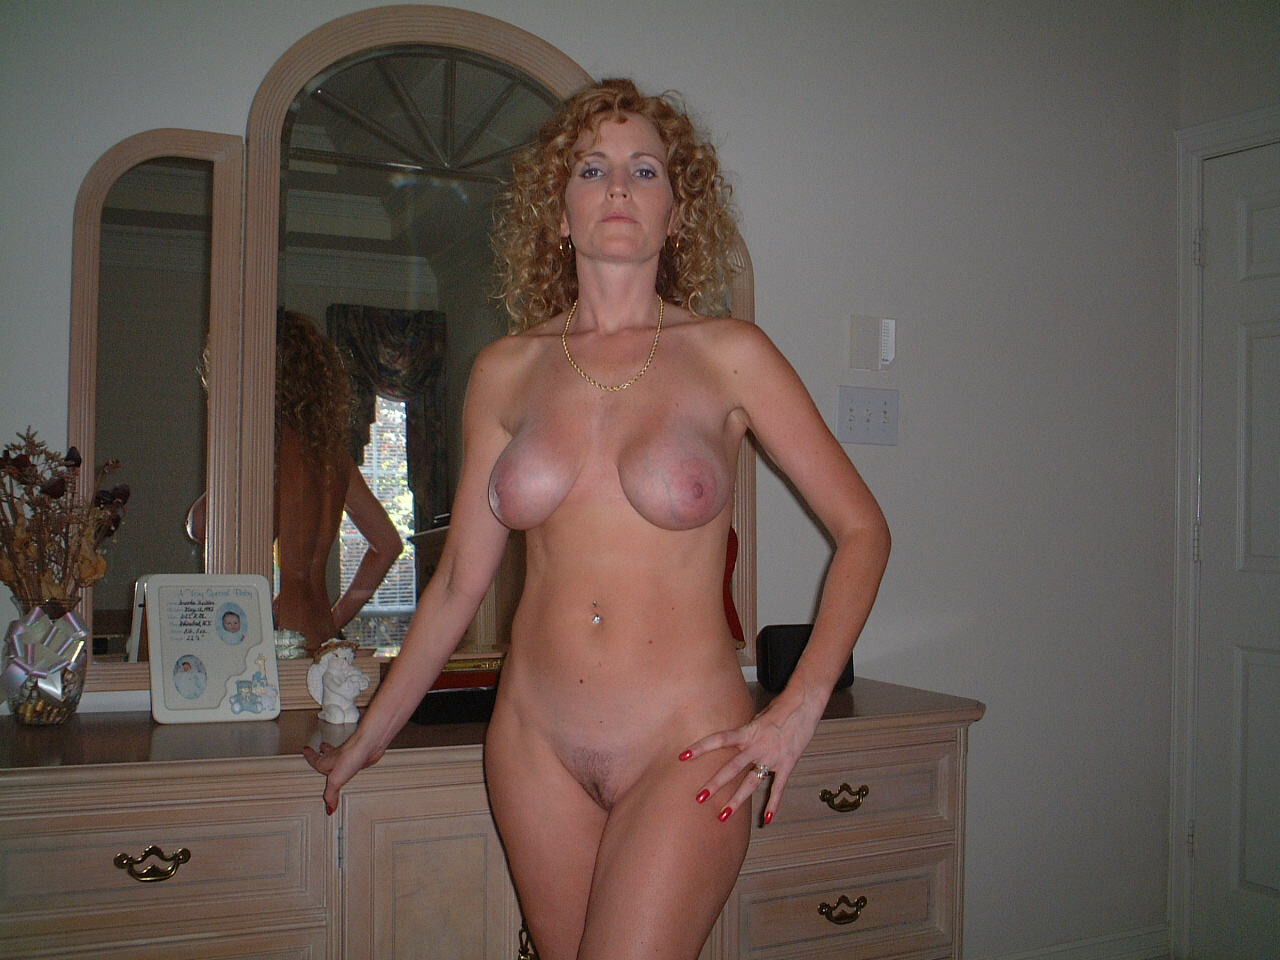 Stolen ex nude pice with you